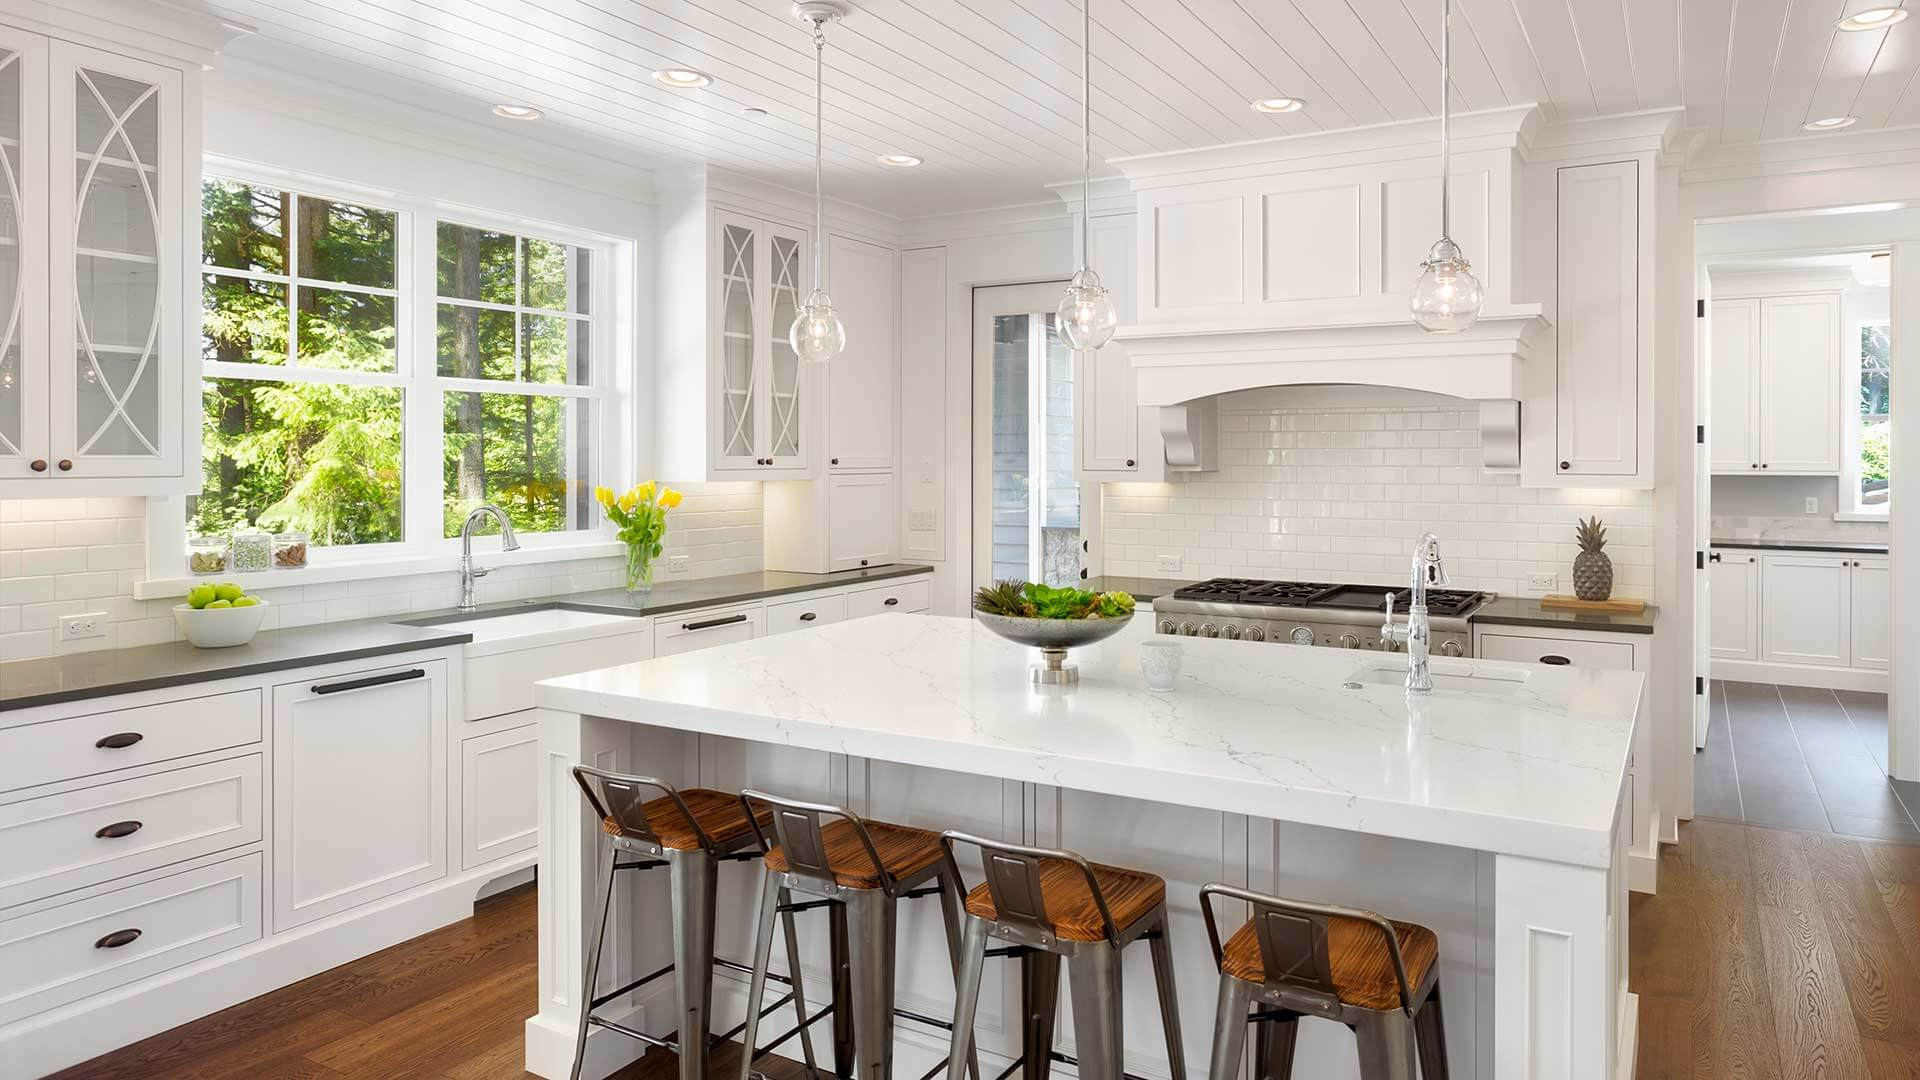 Modern renovated kitchen with a Classic Series Double Hung Window above the kitchen sink.